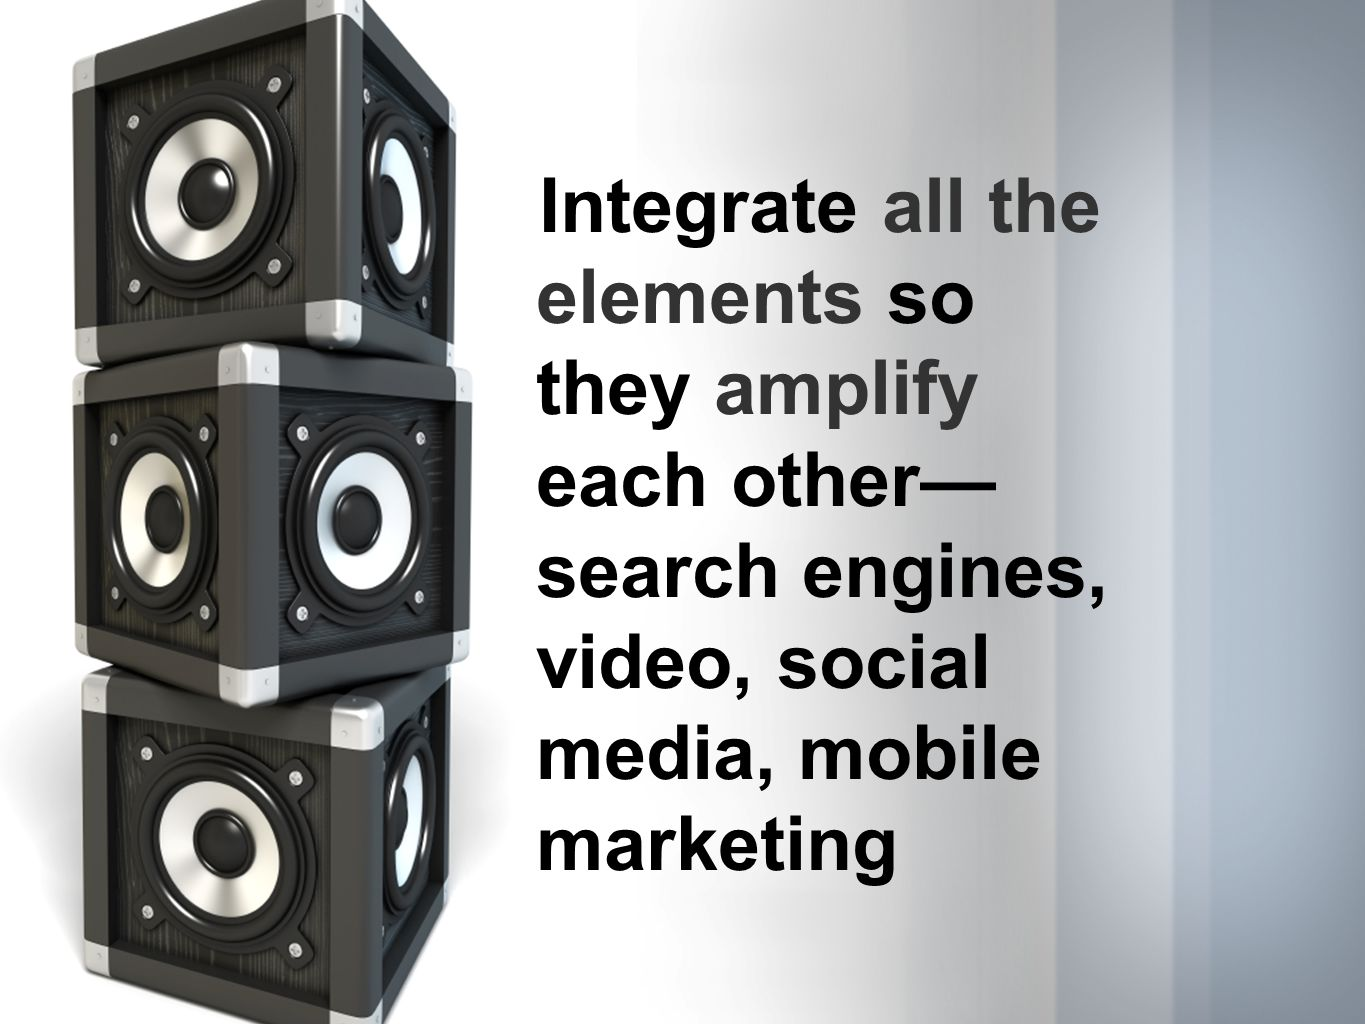 Integrate all the elements so they amplify each other search engines, video, social media, mobile marketing